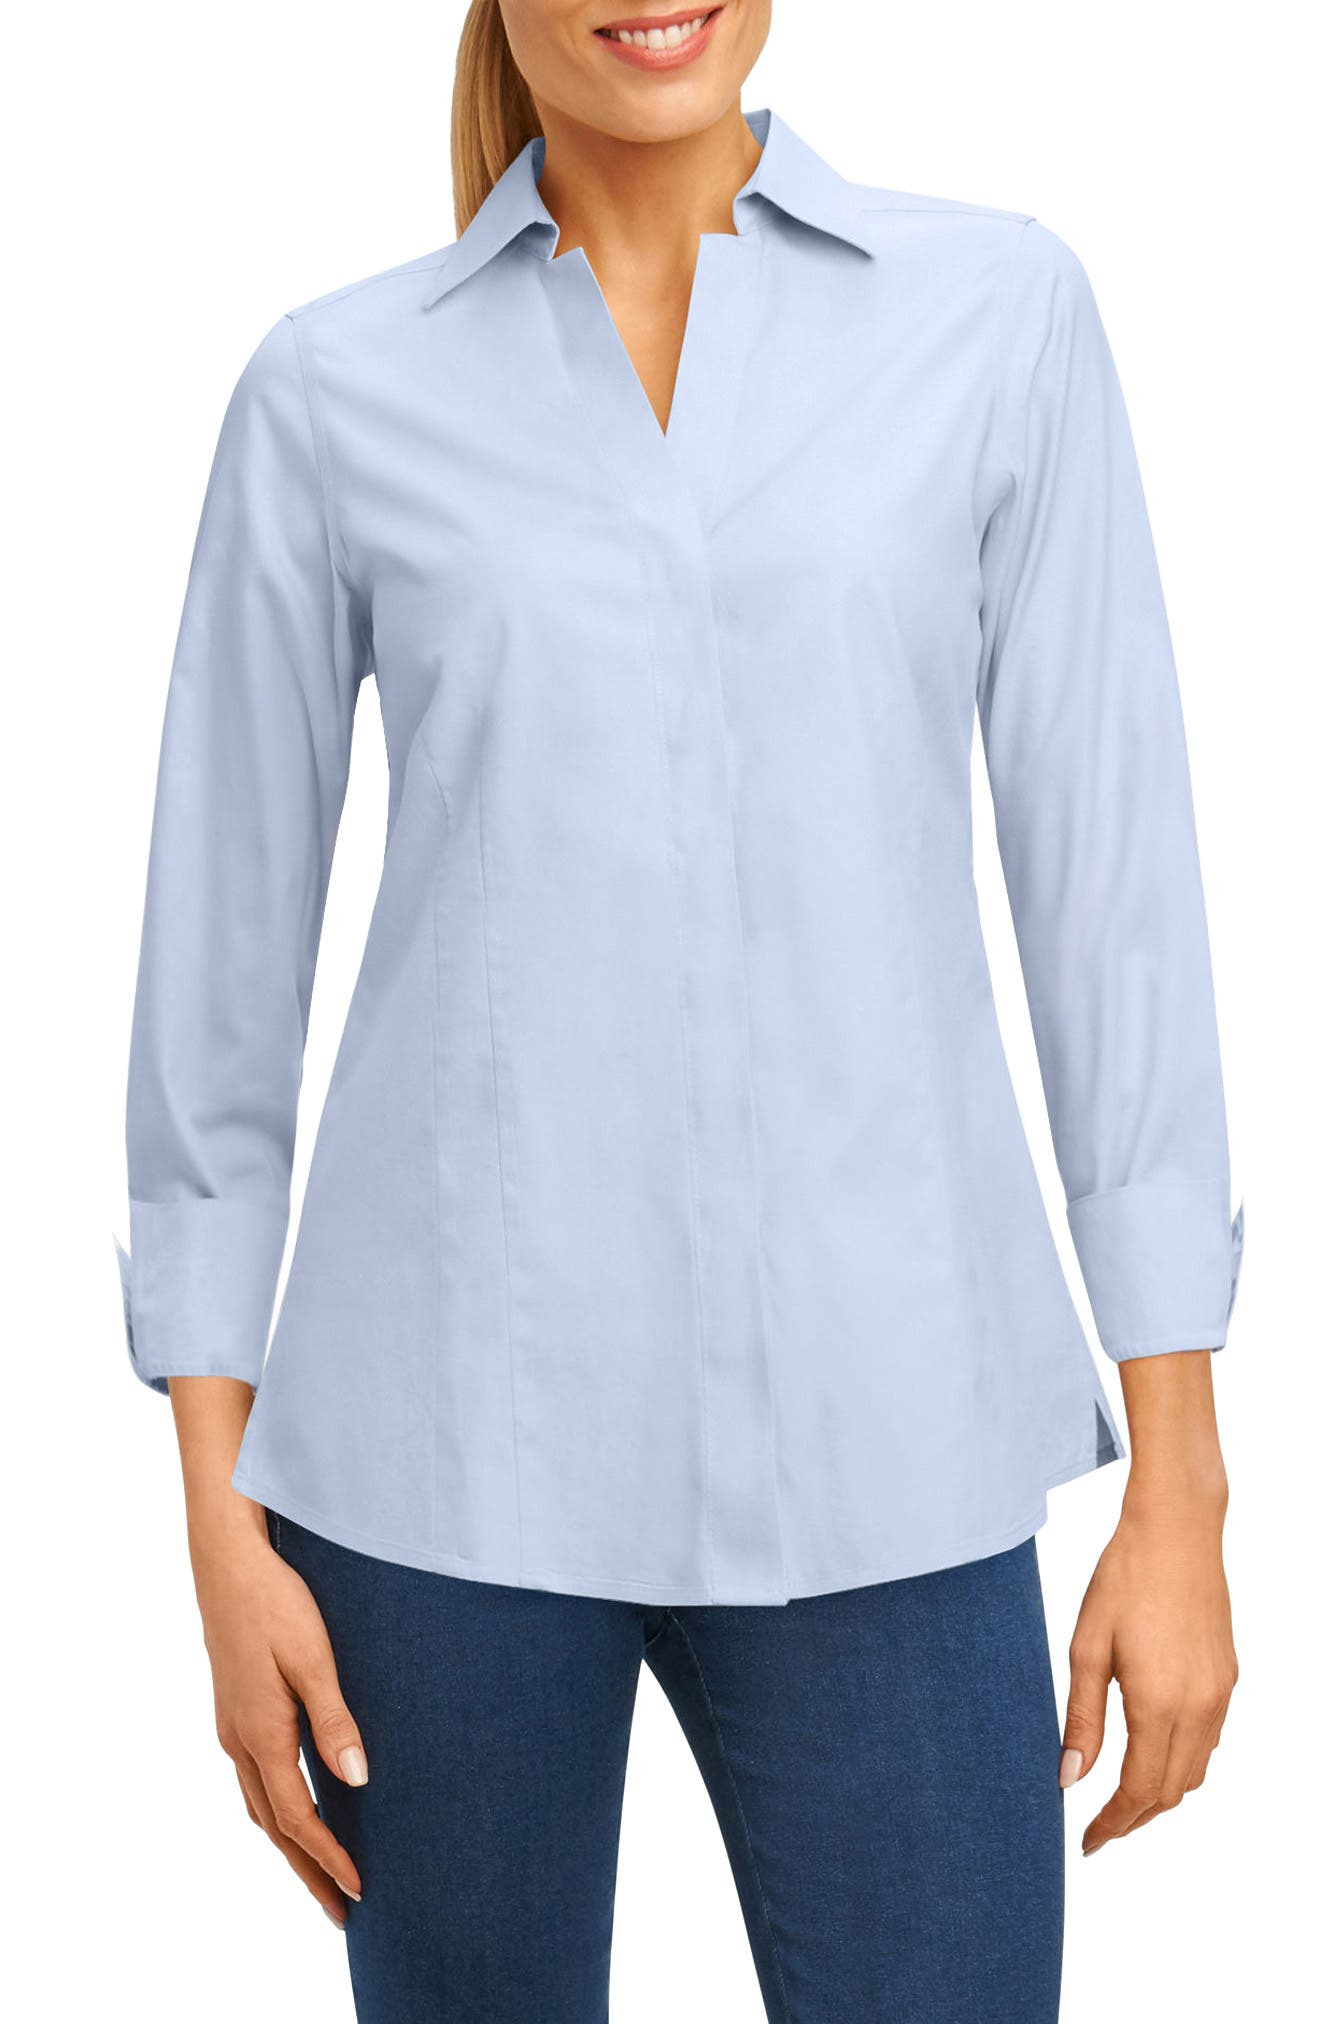 Foxcroft Fitted Non-Iron Shirt (Regular & Petite)